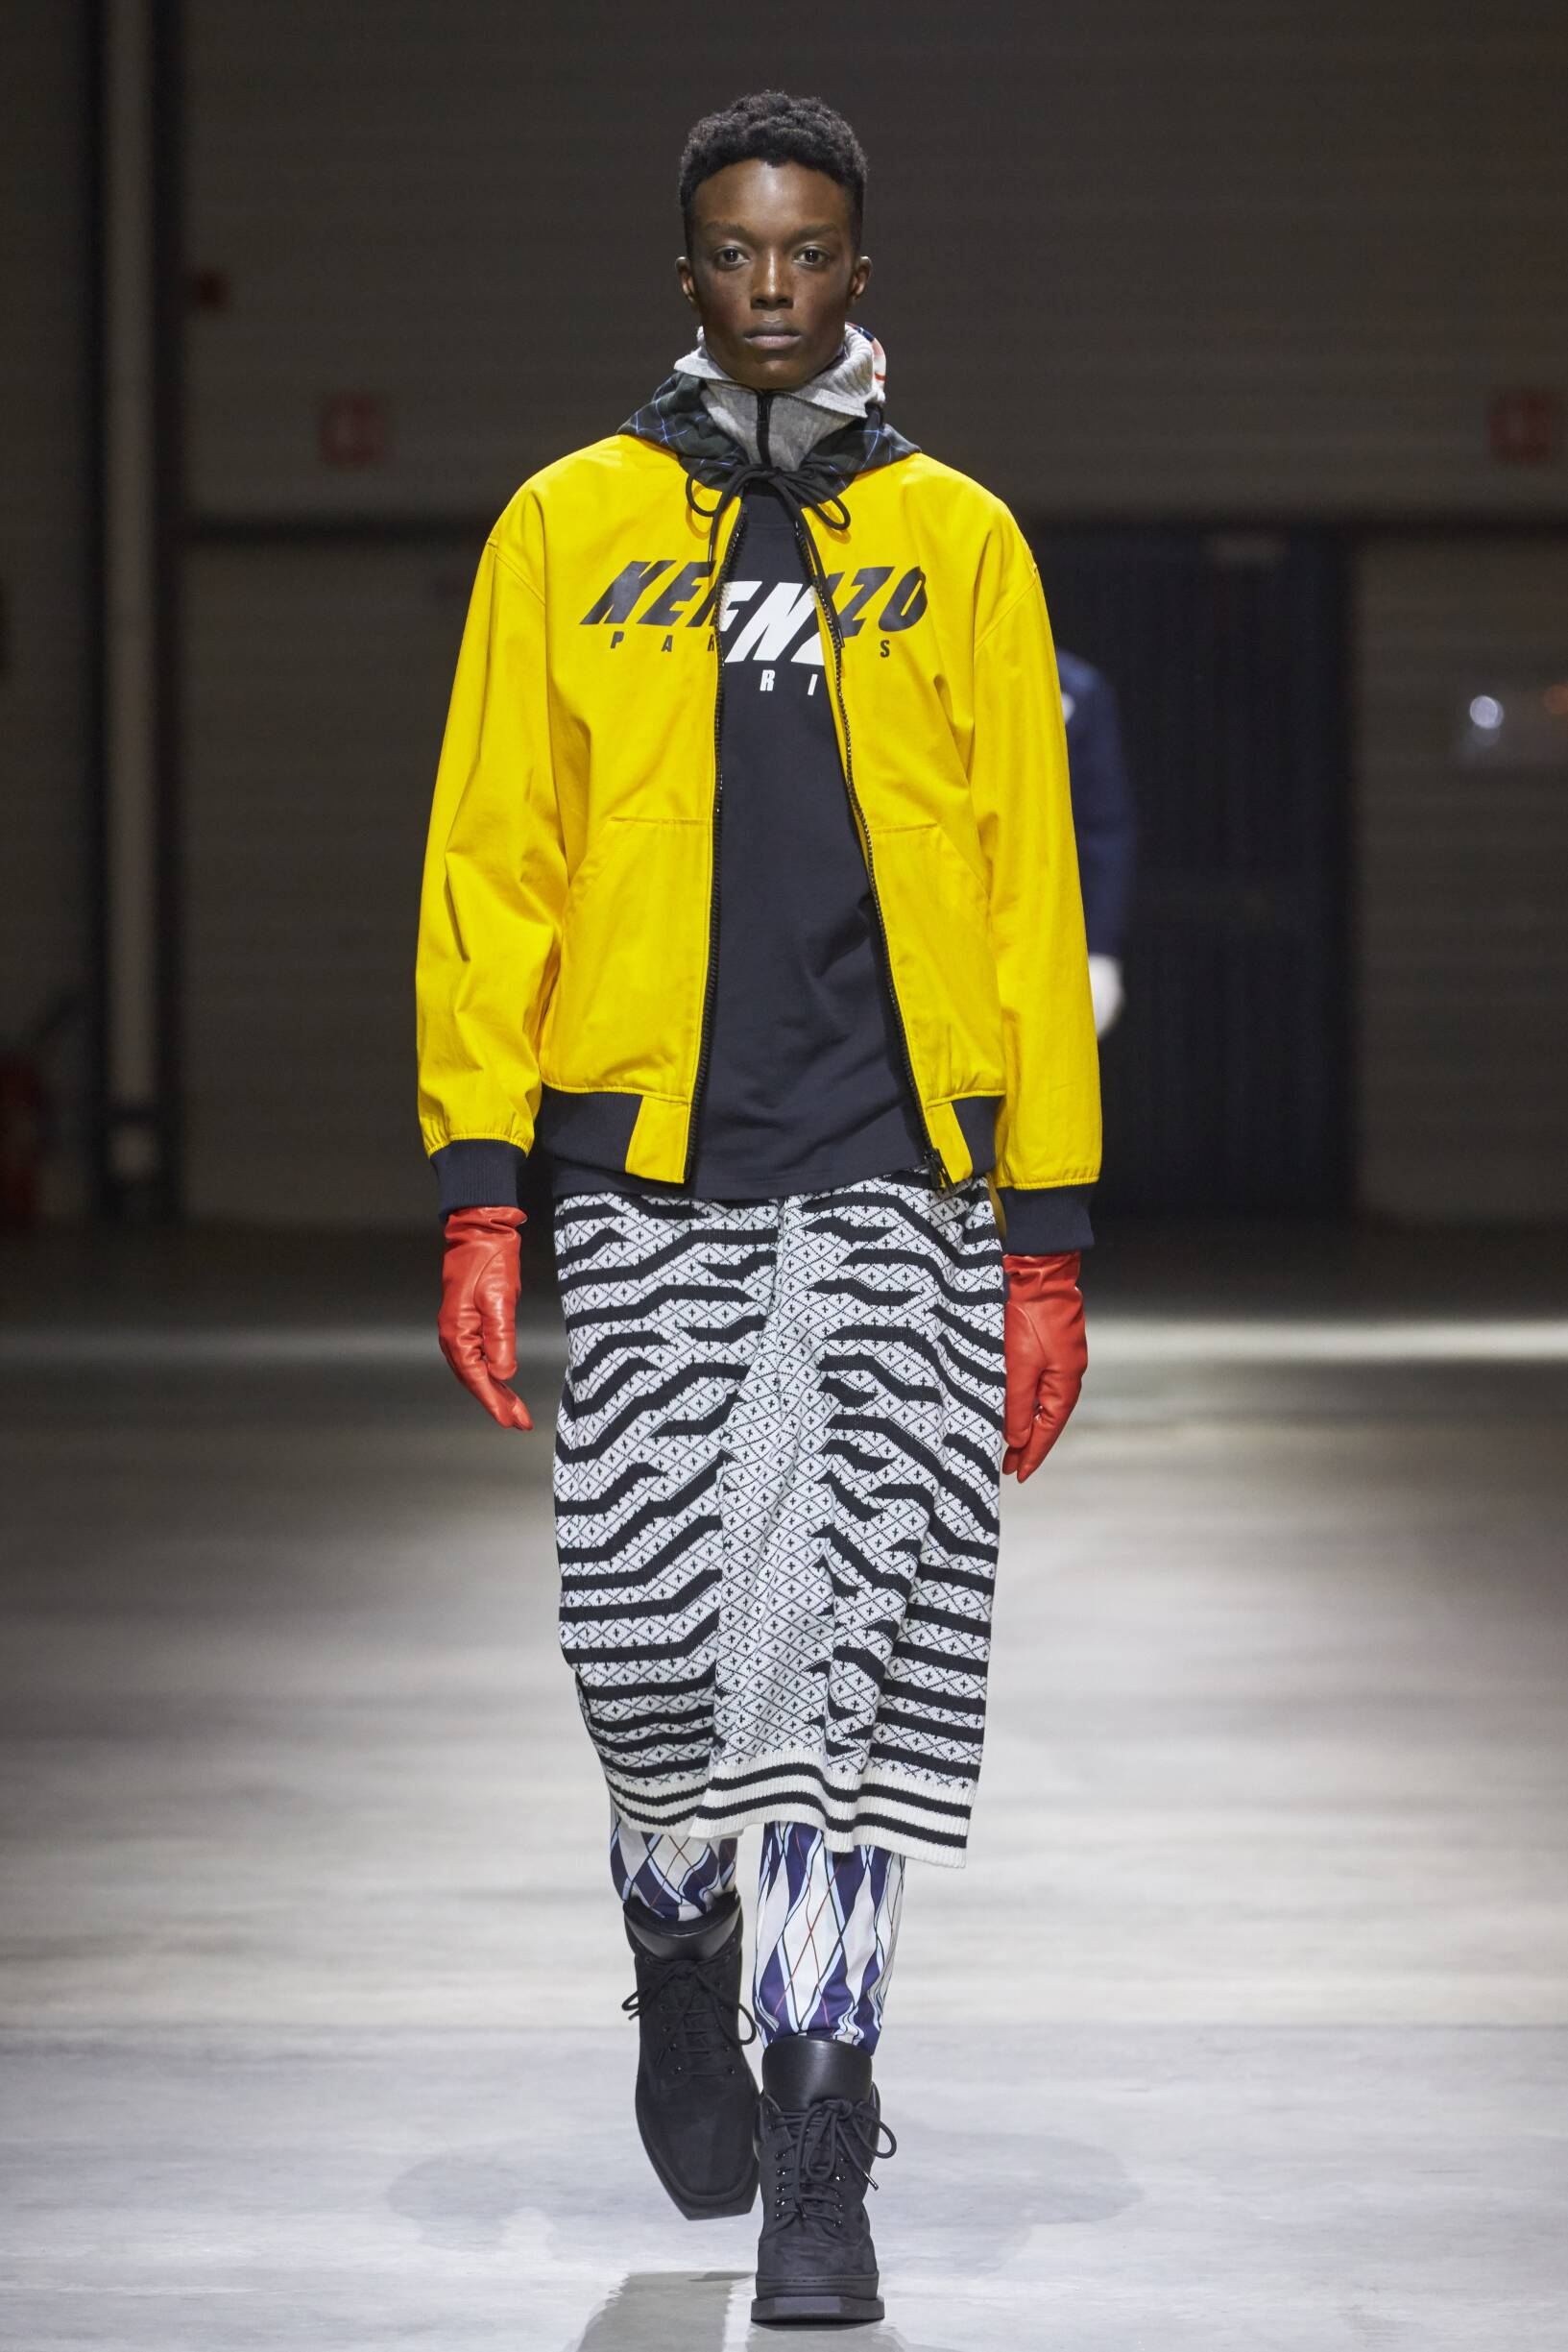 KENZO FALL WINTER 2017-18 COLLECTION | The Skinny Beep